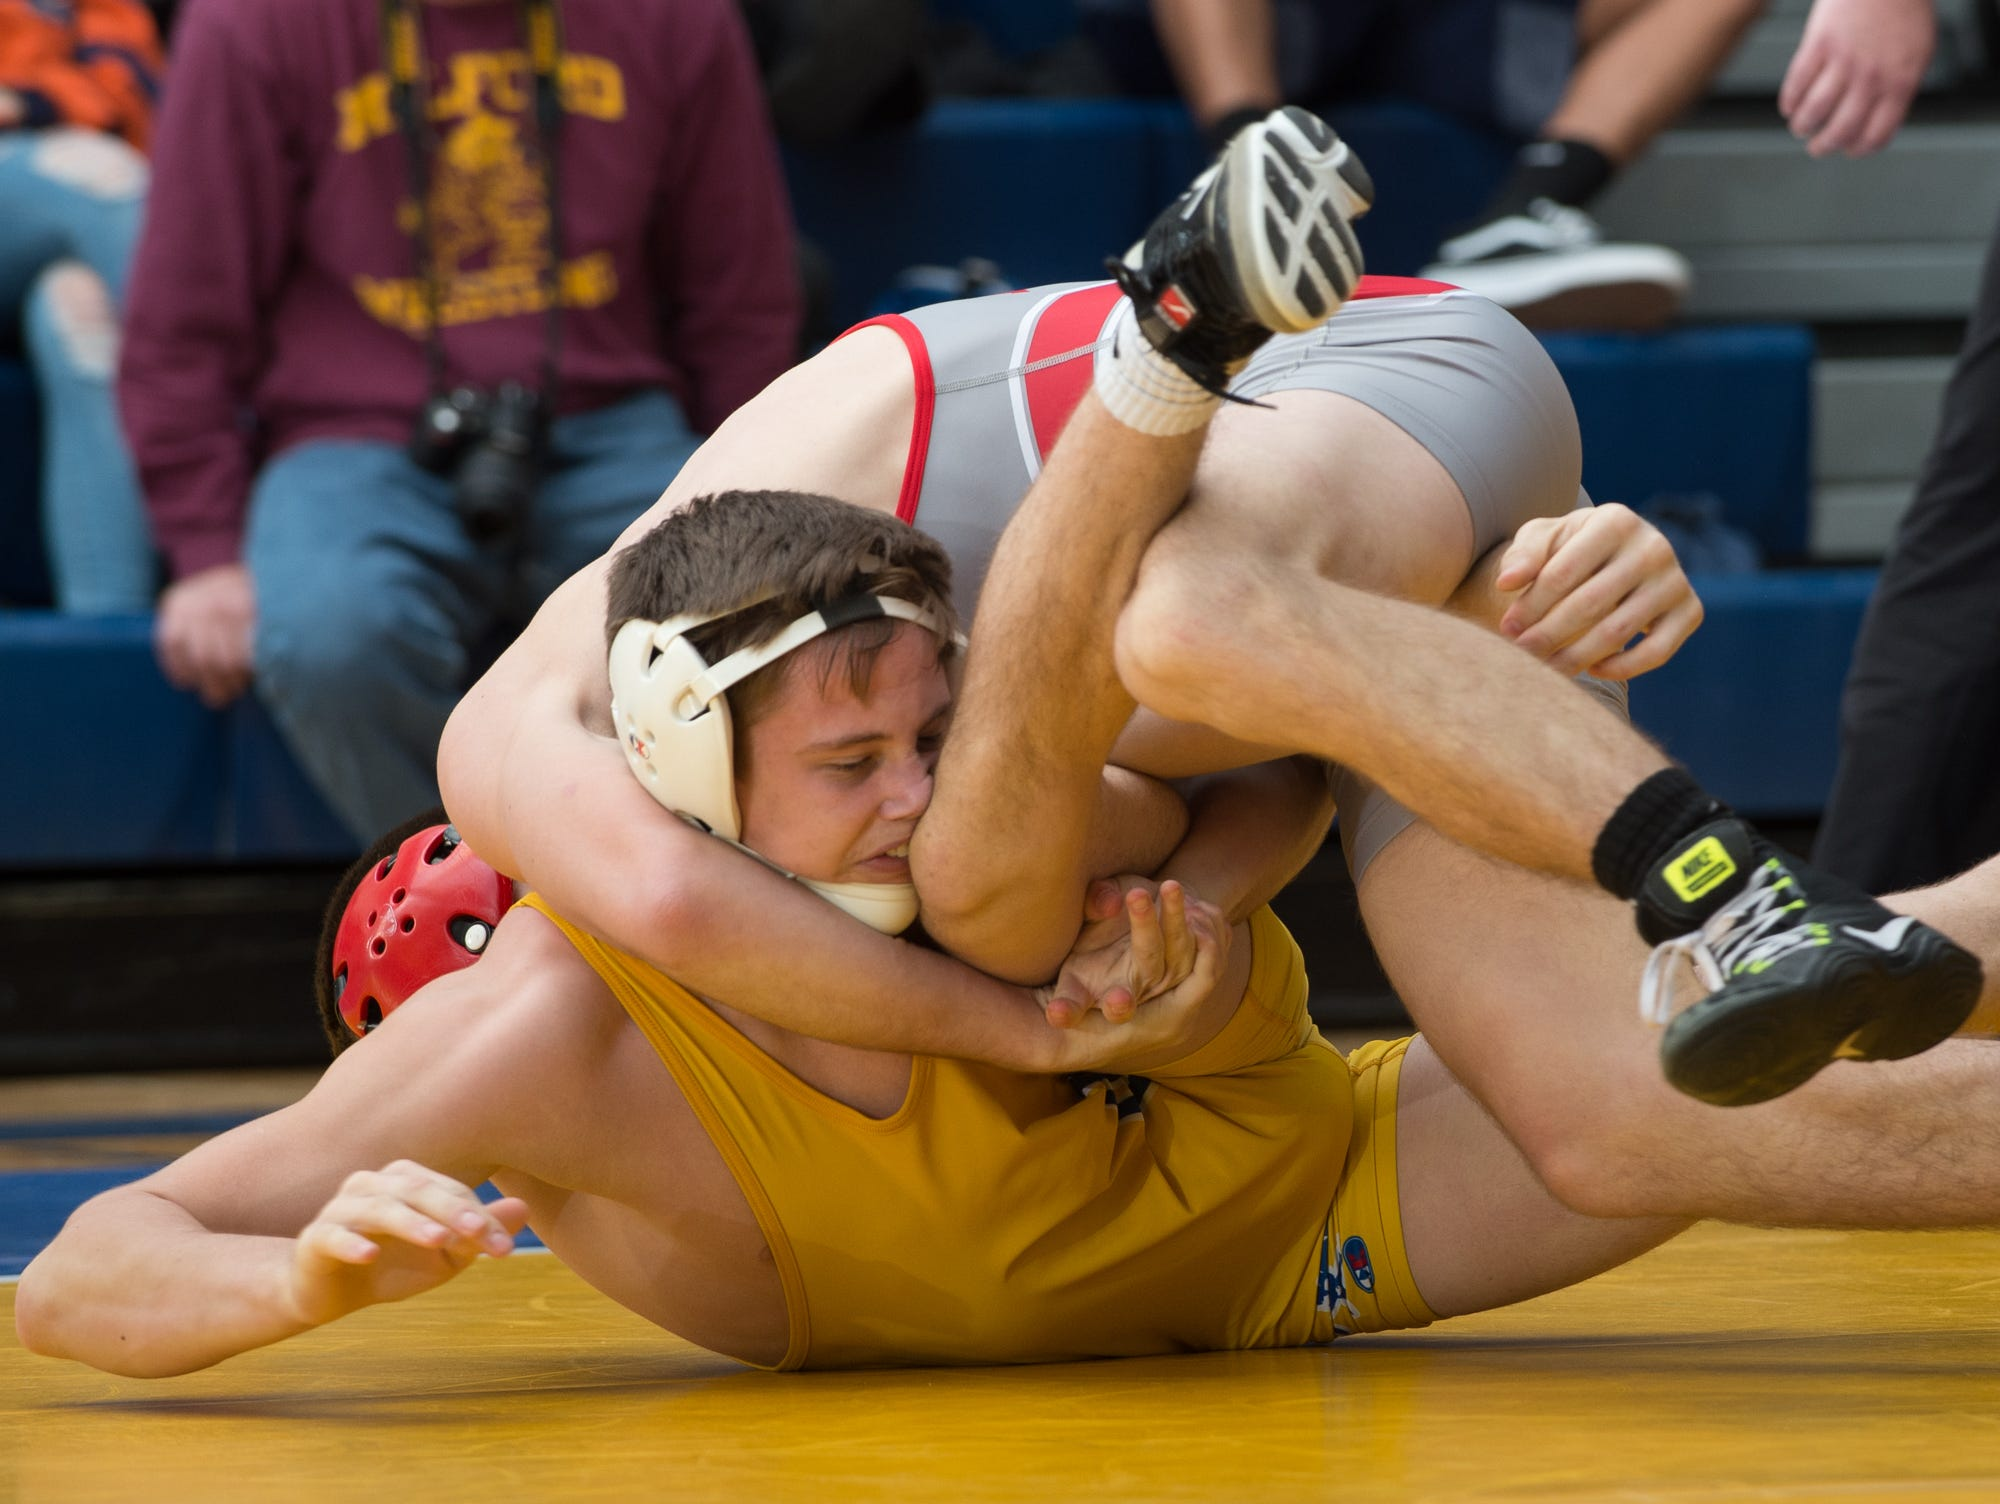 Smyrna's Greg Baum (top) works to roll Caesar Rodney's Jackson Dean on to his back in the 132 pound championship match at the Henlopen Conference wrestling tournament at Sussex Central High School.